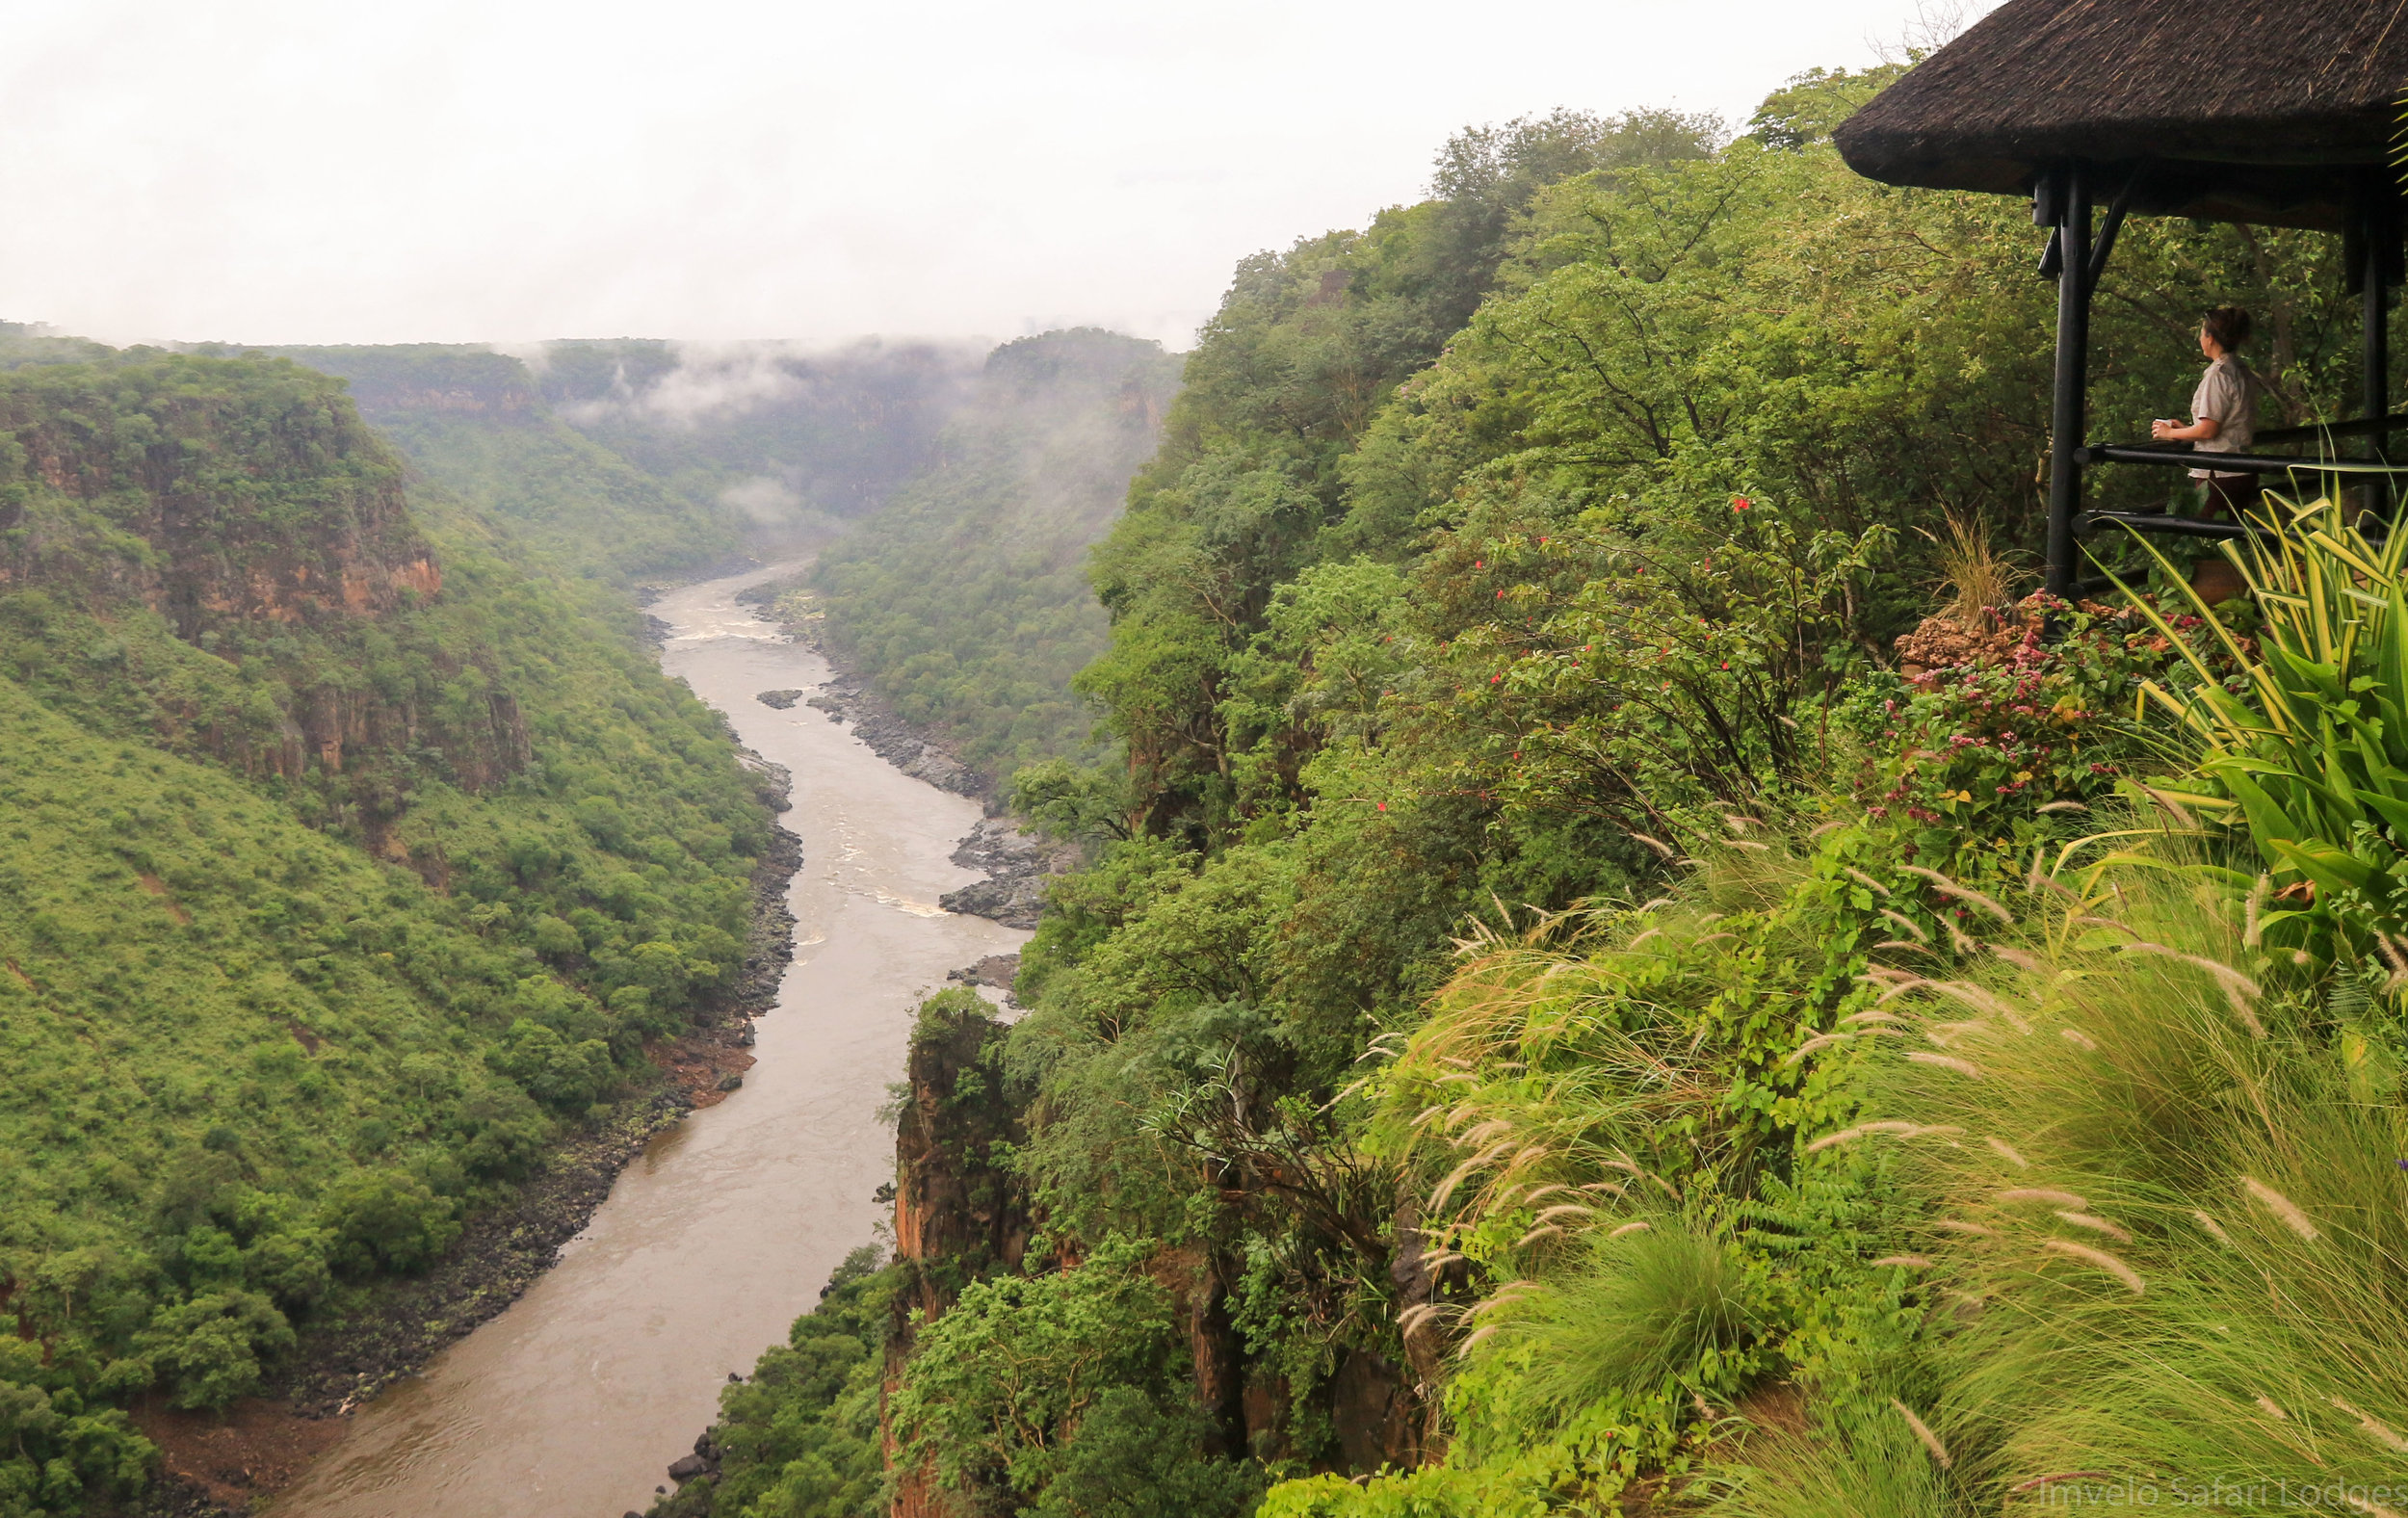 16 - Imvelo Safari Lodges - Gorges - Green season early morning coffee at Gorges lodge.jpg